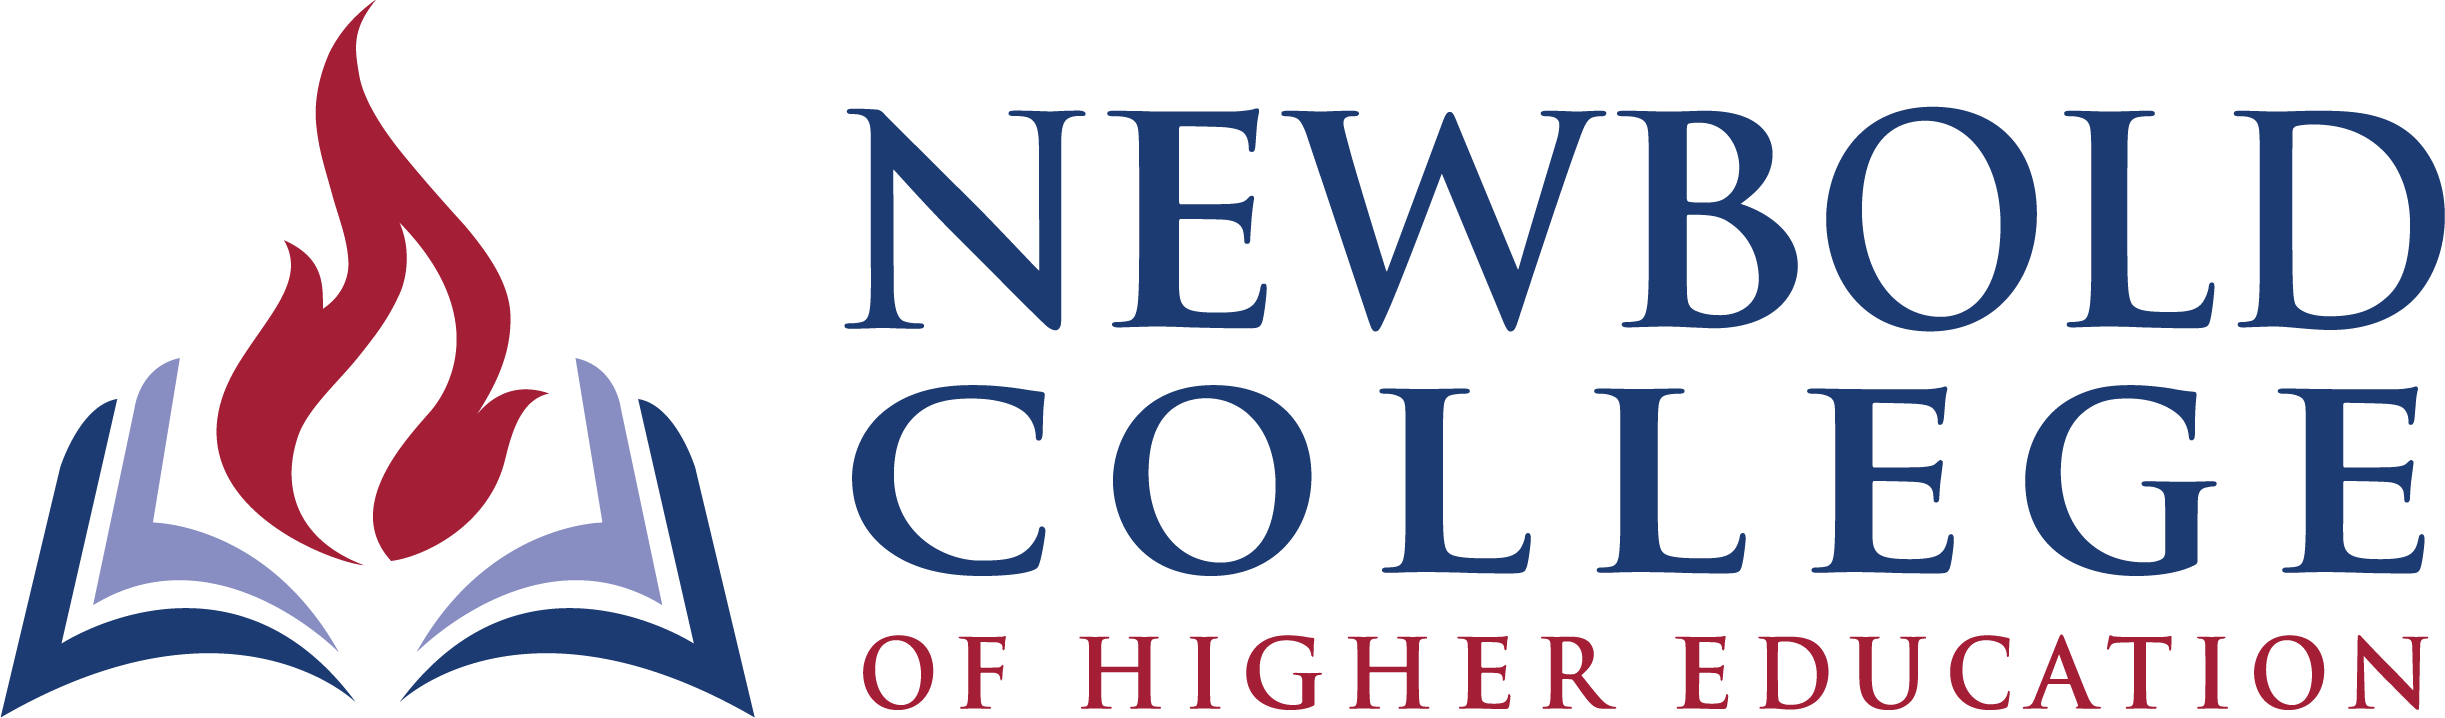 Newbold College of Higher Education